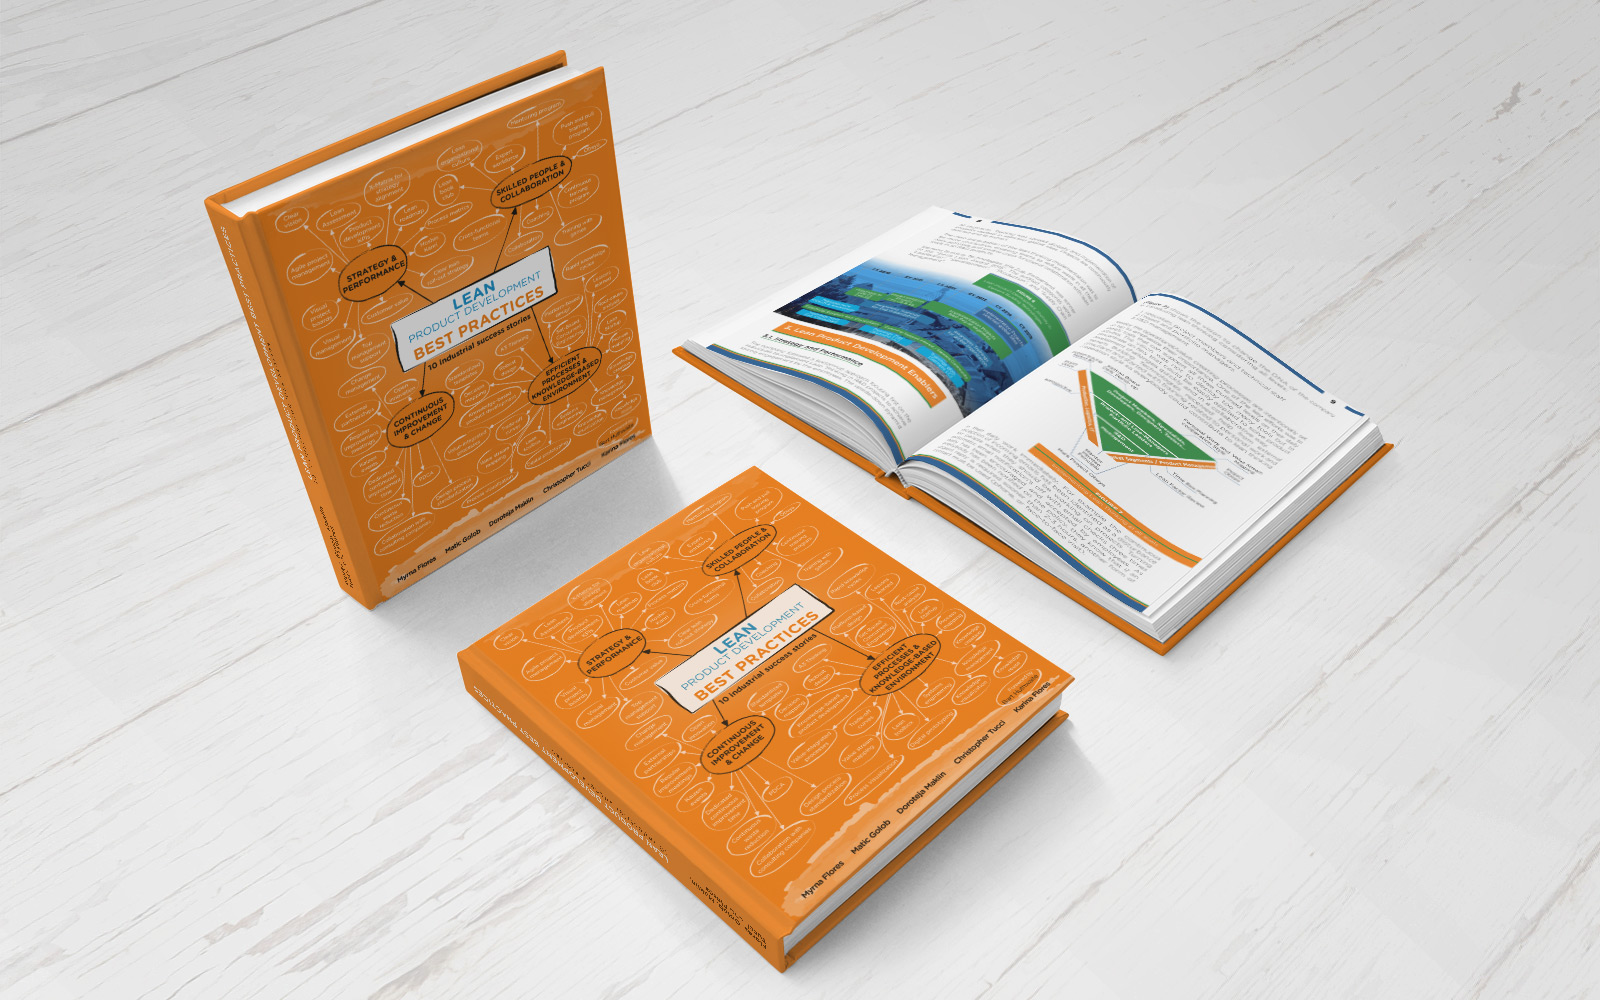 laa-library_book